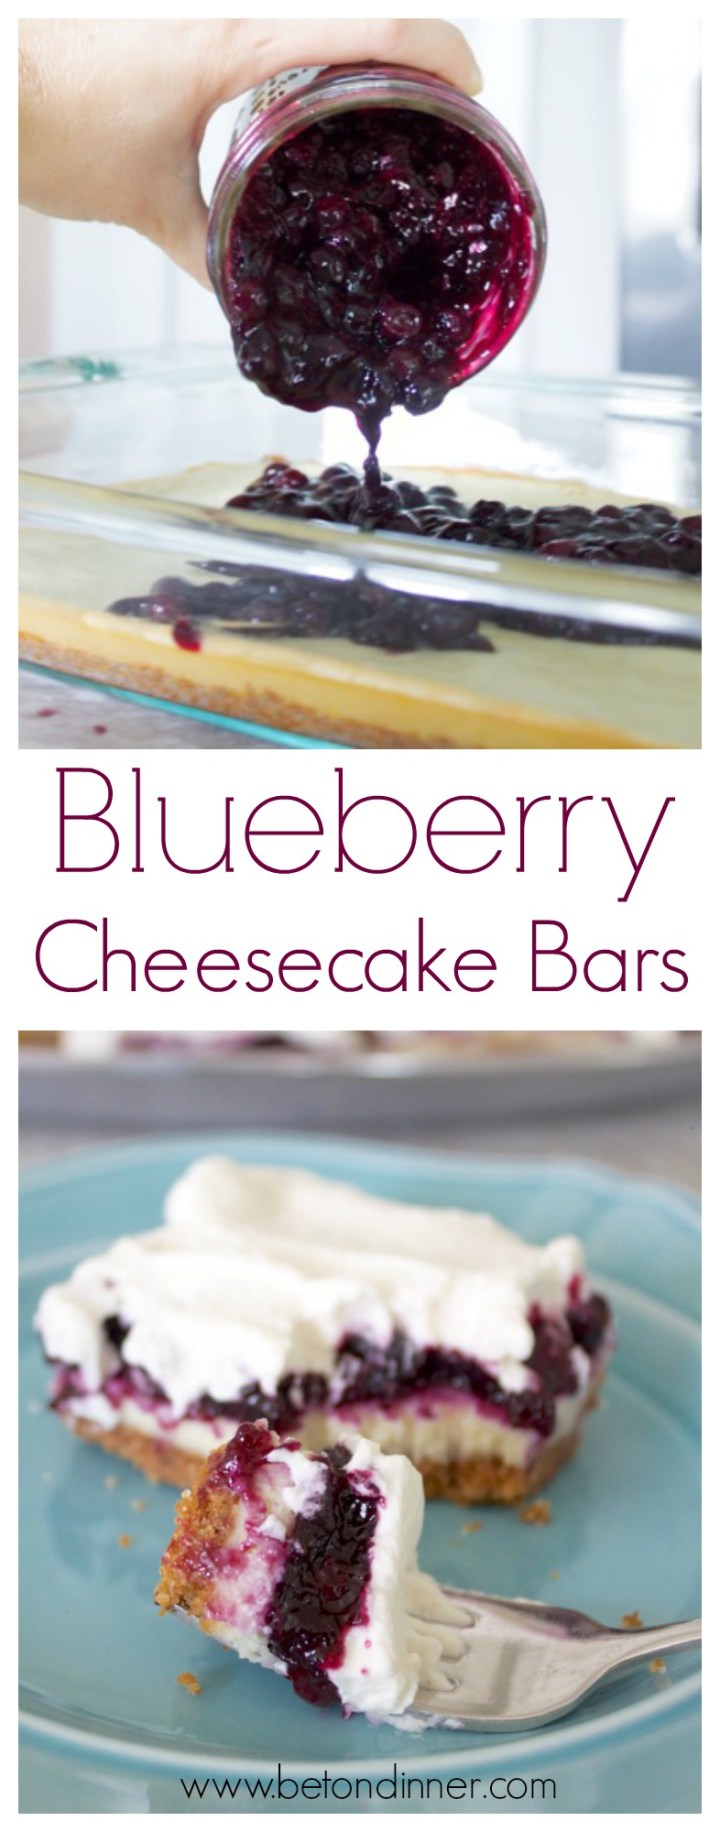 Pinterest Blueberry Cheesecake Bars